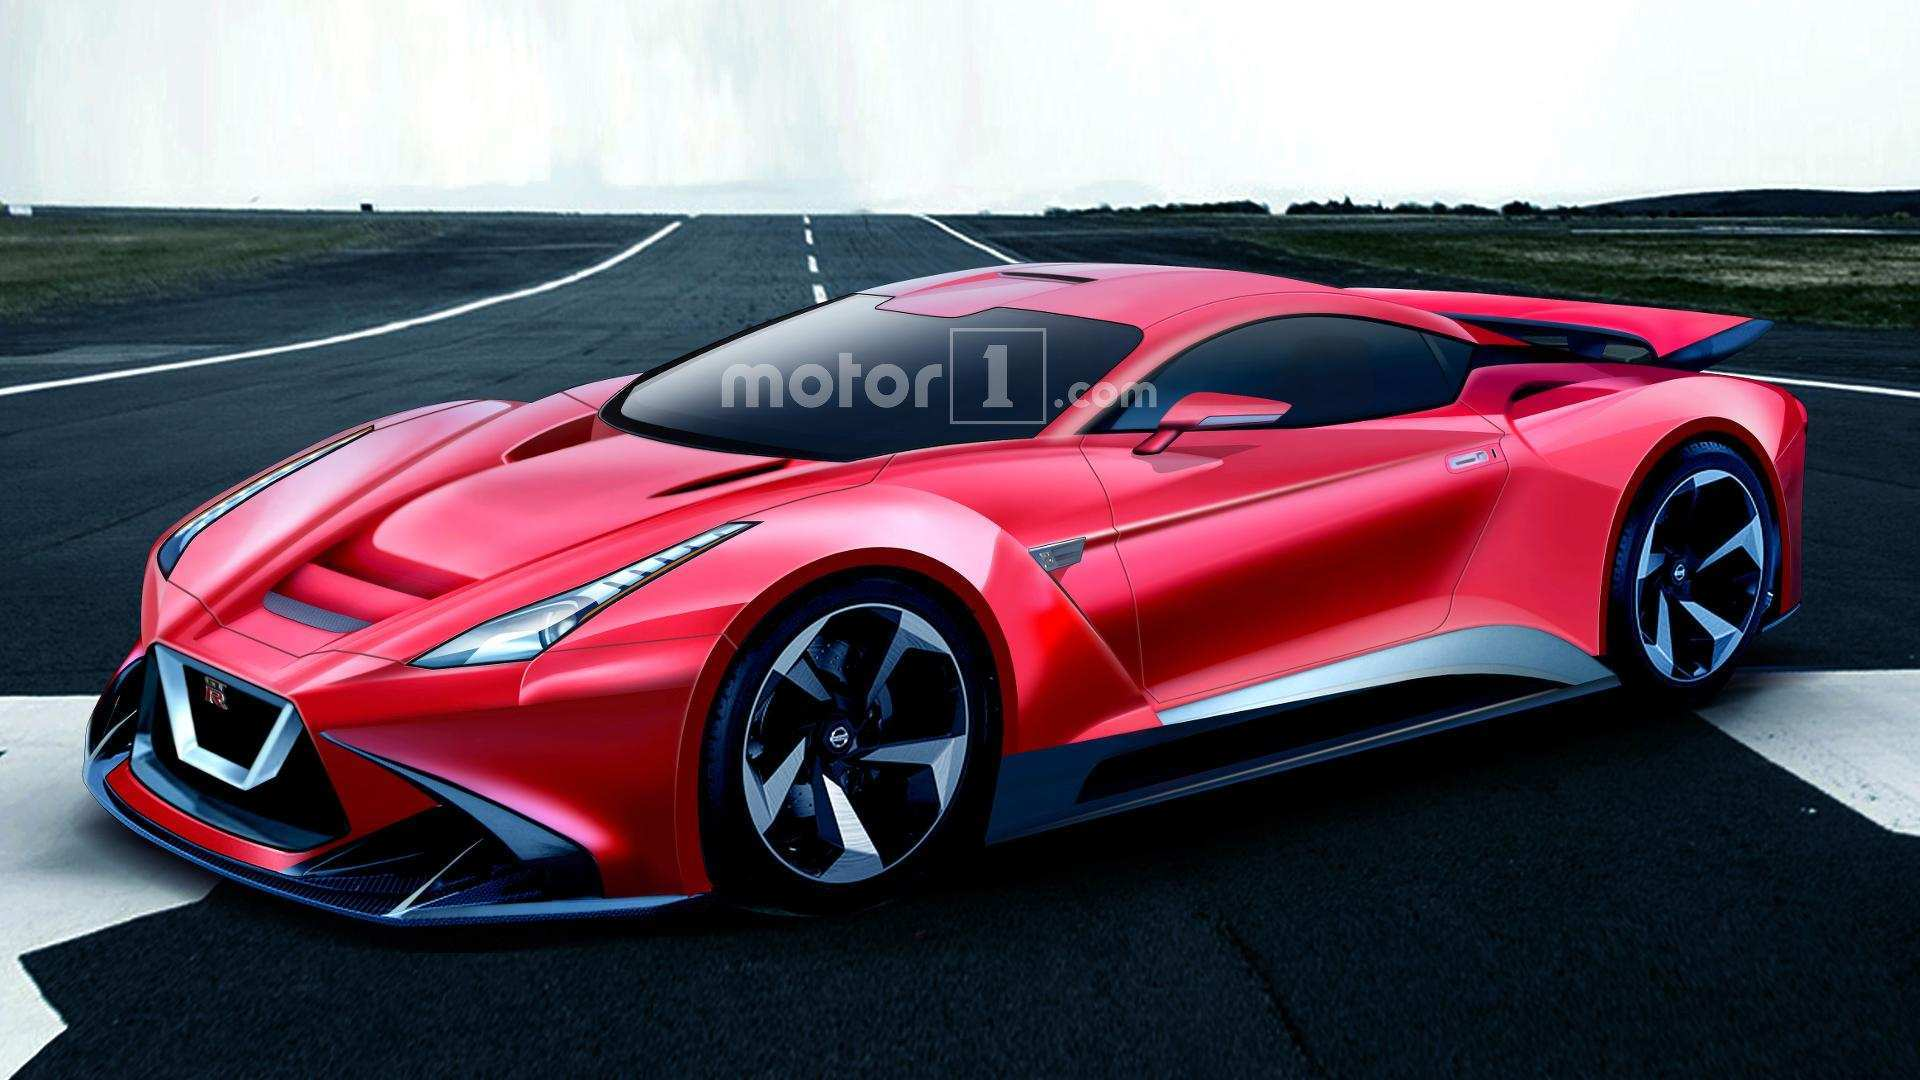 37 Great 2020 Nissan R36 Picture for 2020 Nissan R36